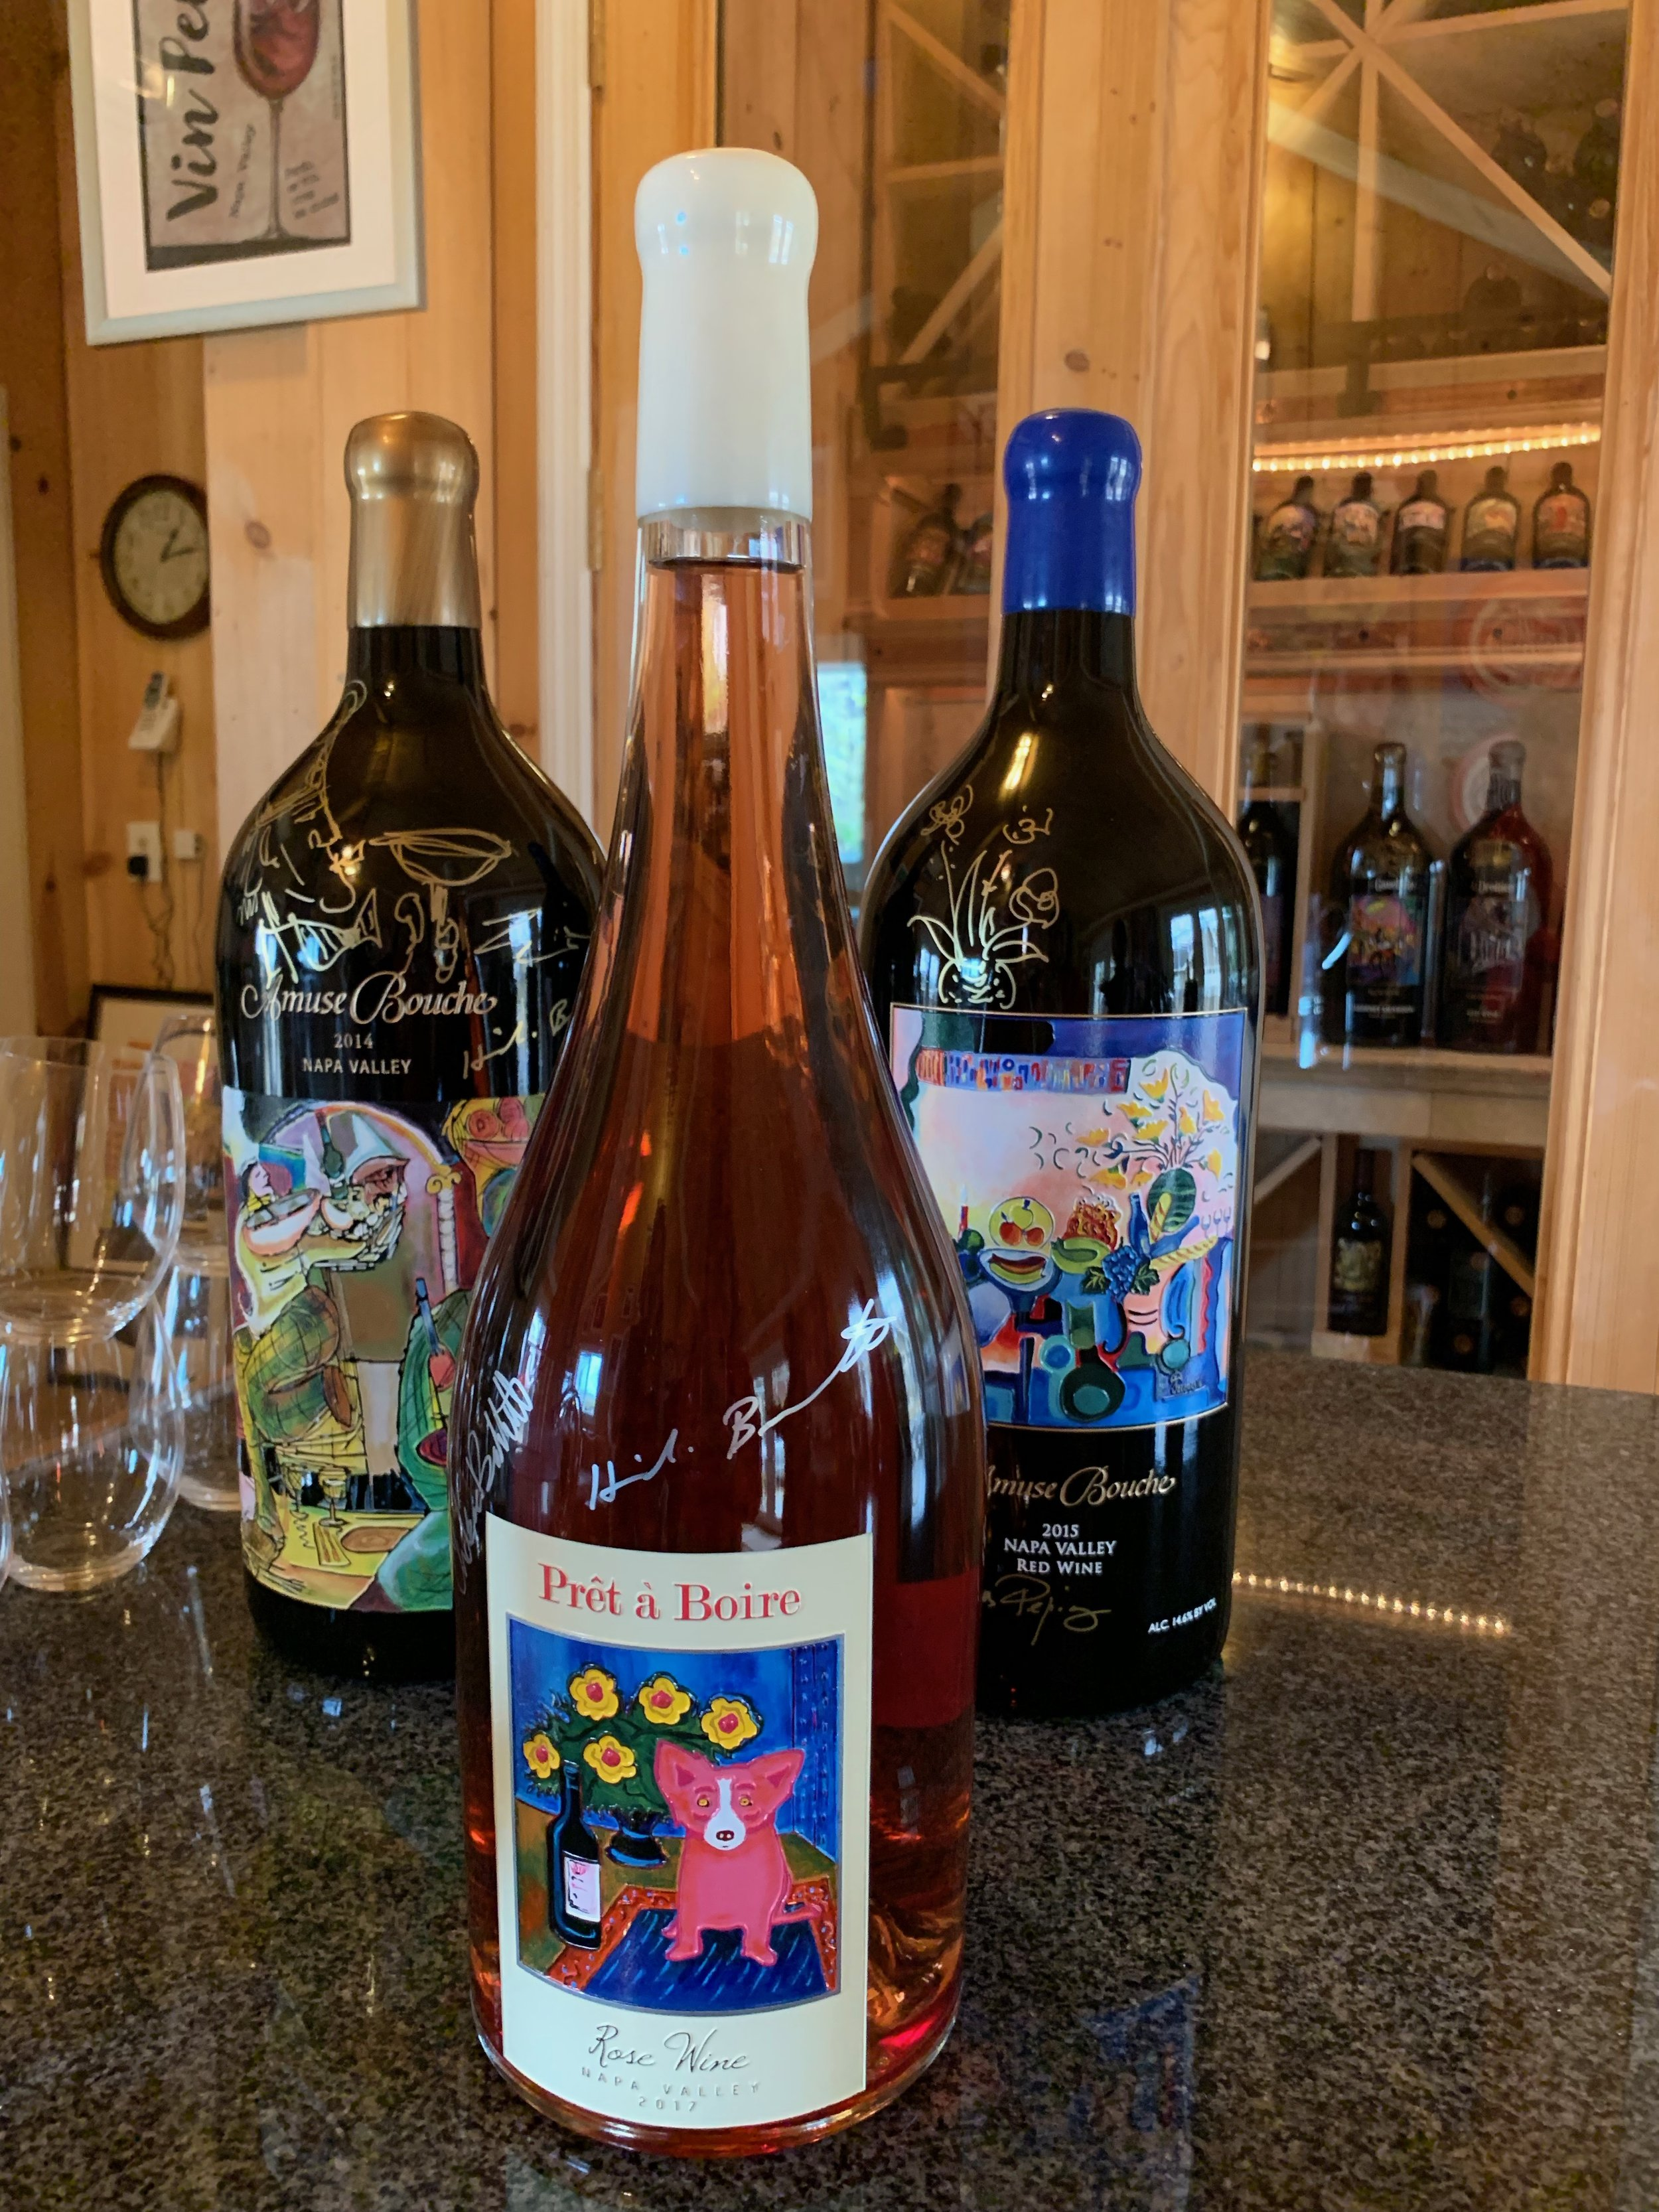 Love this dog on the rosé label by artist, George Rodrigue